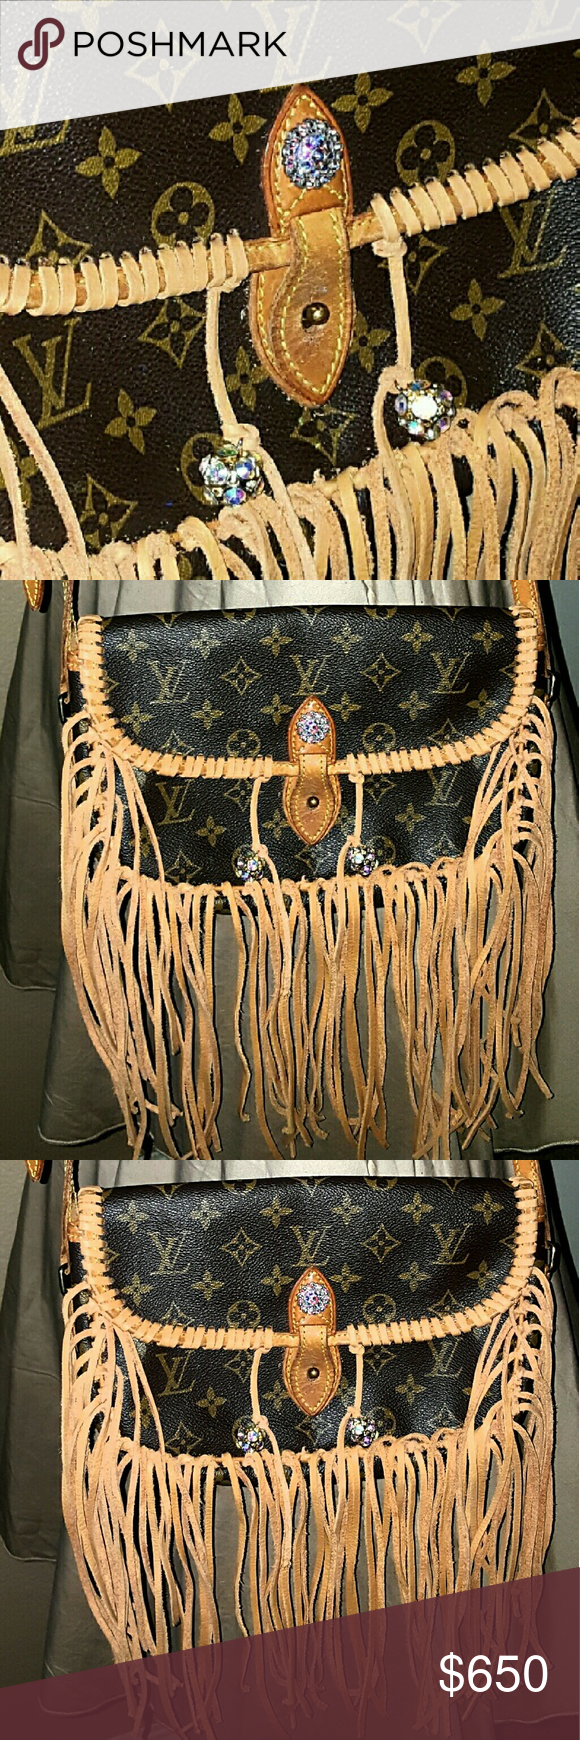 Authentic Vintage Louis Vuitton Gibeciere Fully customized in tan deer lace with alittle bit of sparkle contact me for your custom bag Louis Vuitton Bags Crossbody Bags